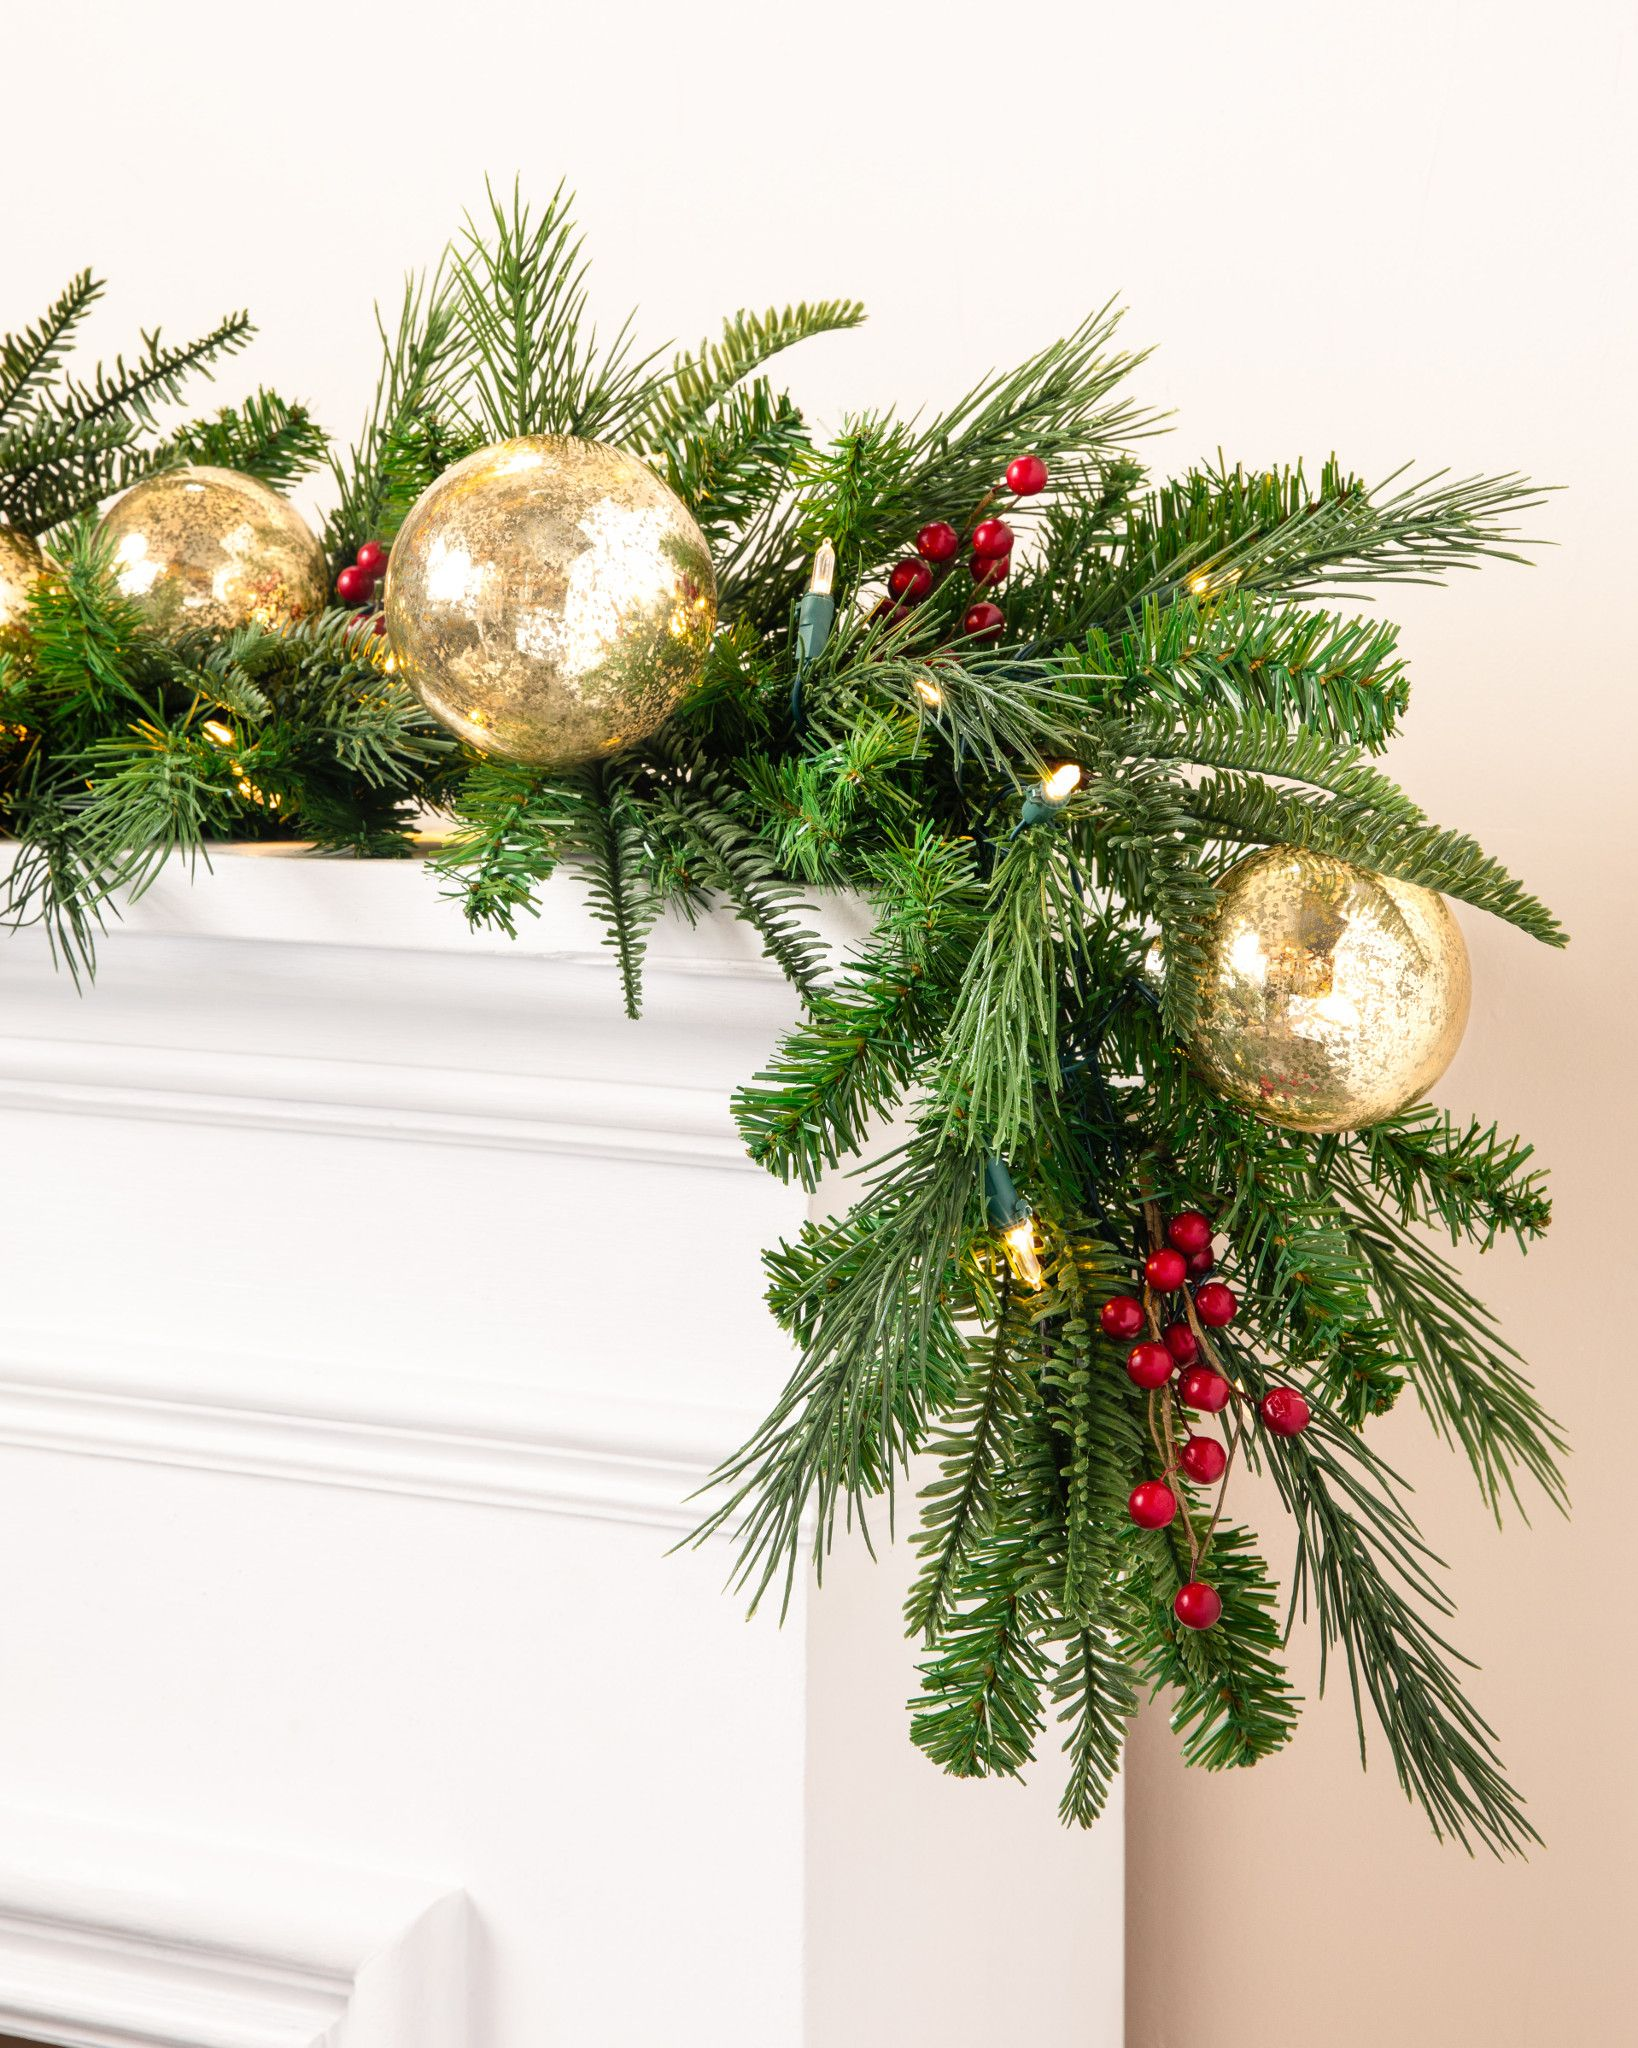 How to choose a garland to illuminate the street for the New Year 23